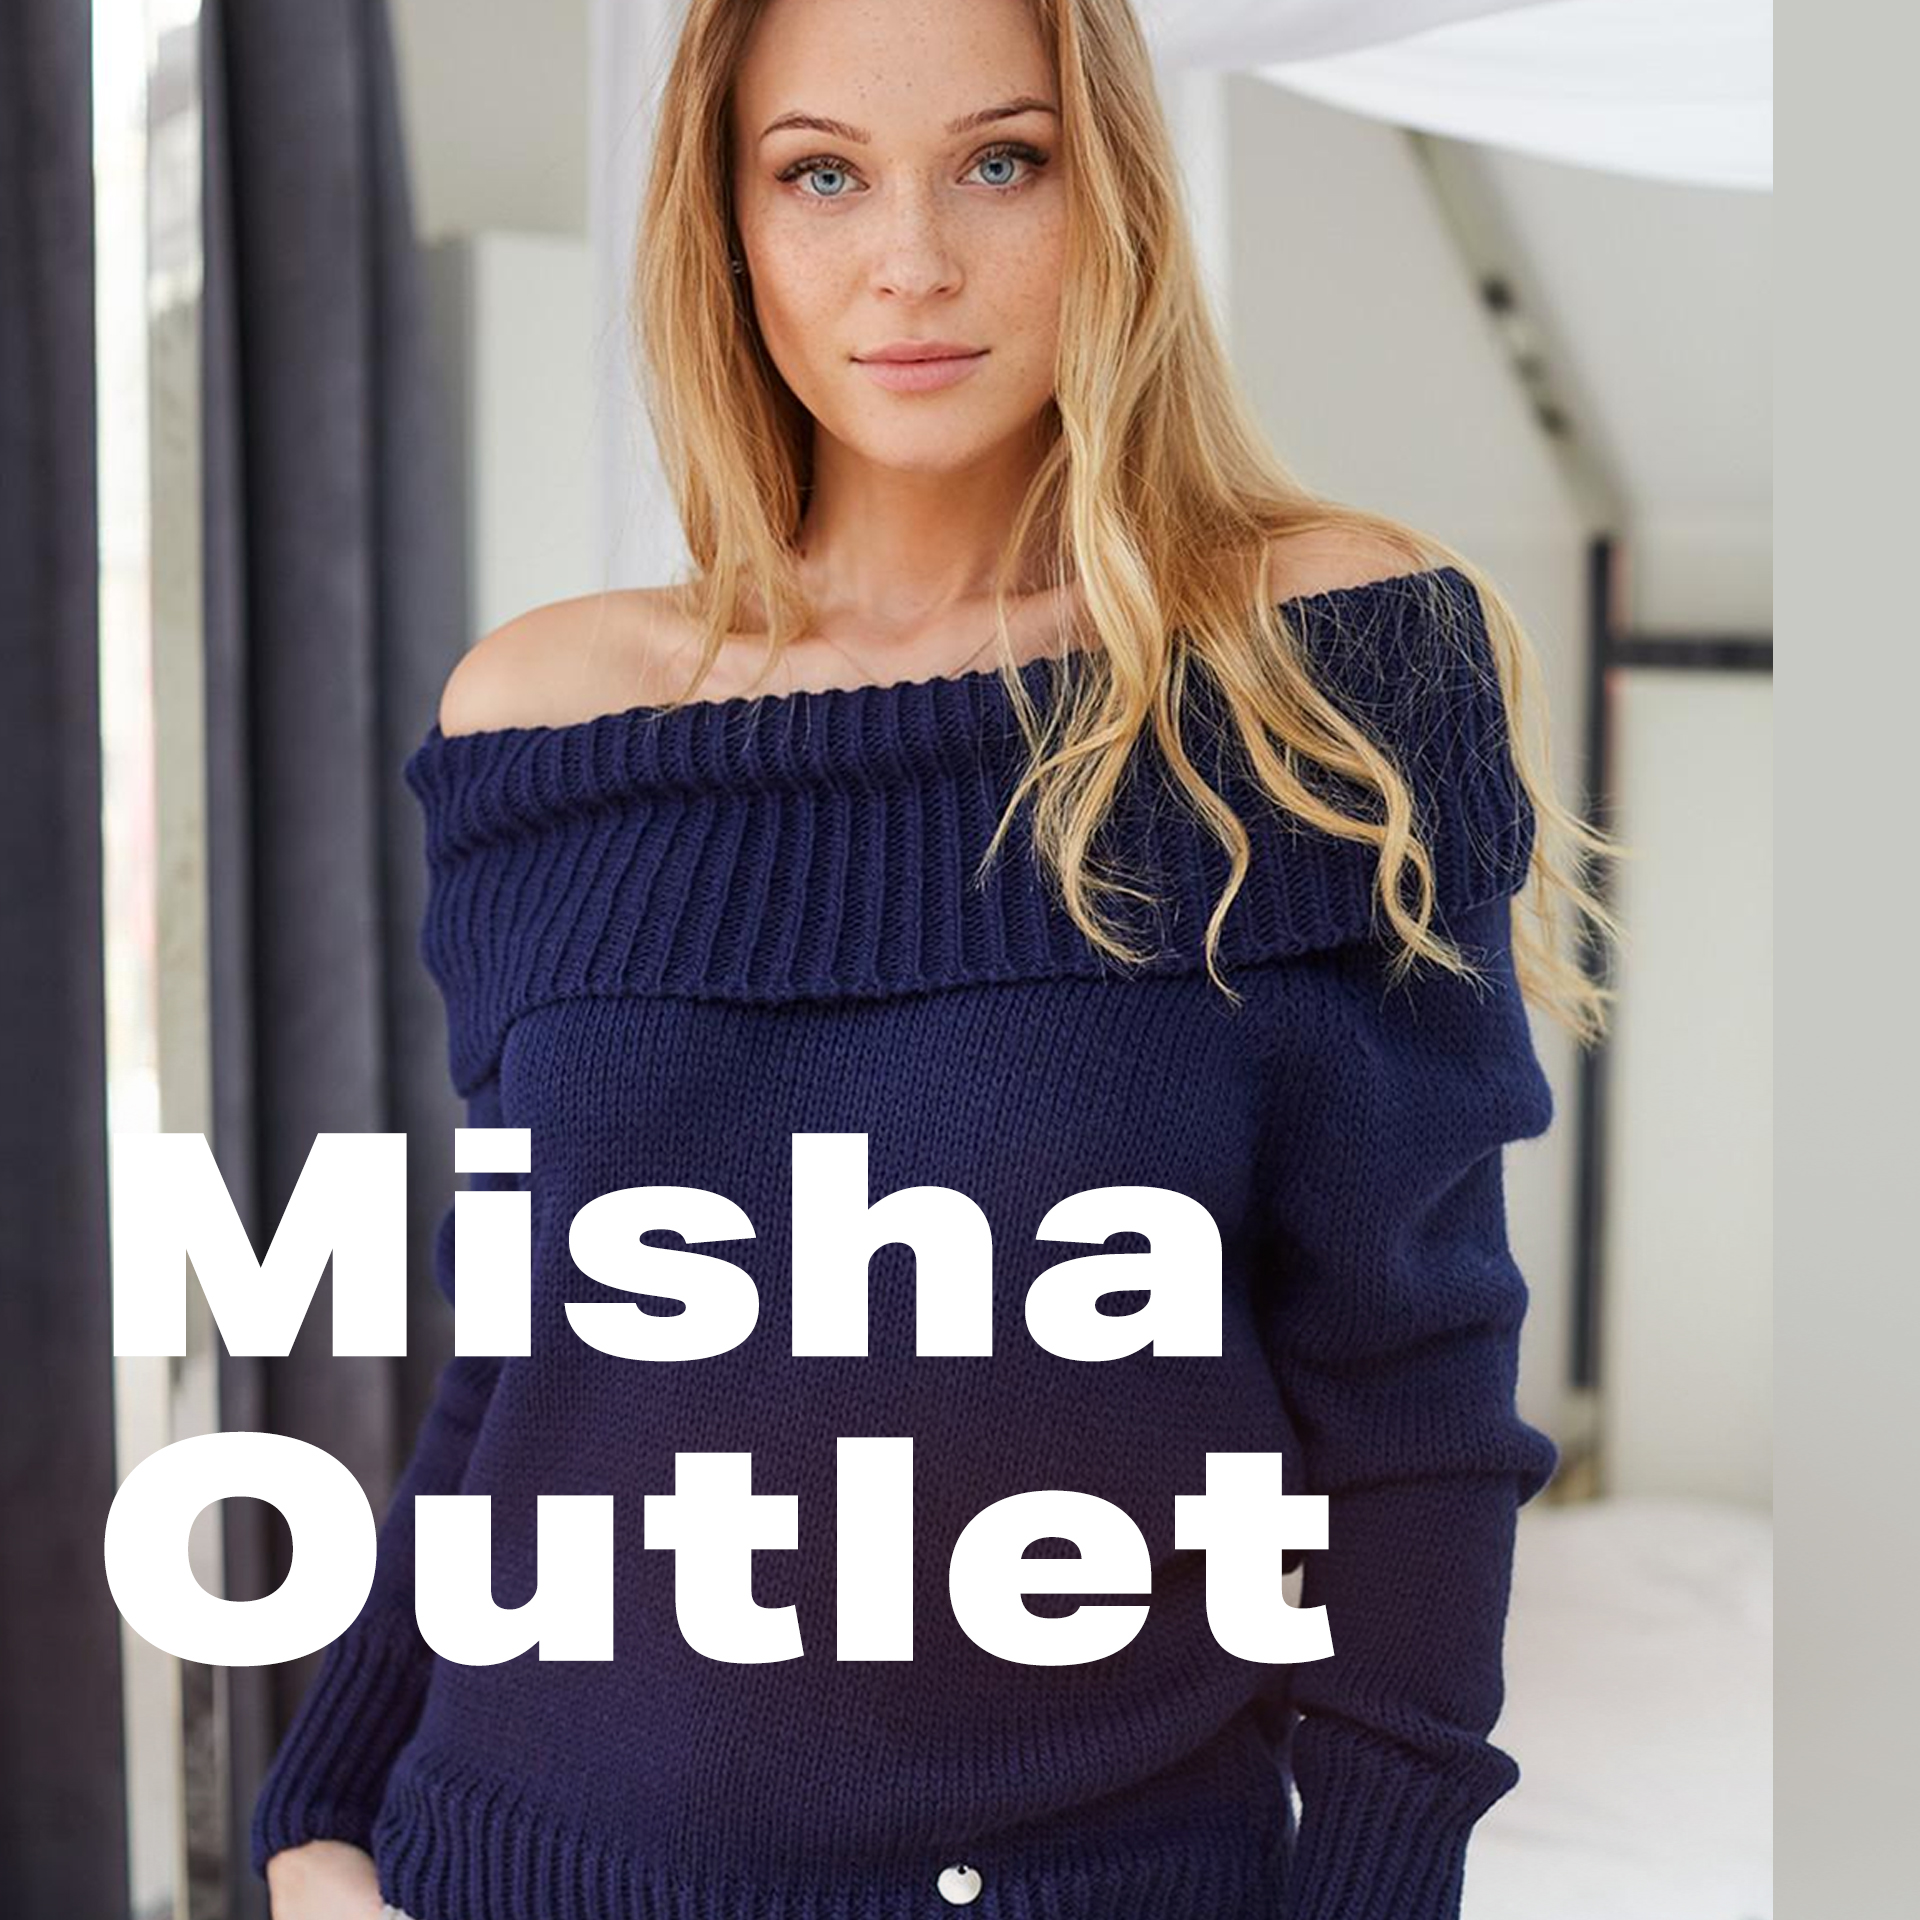 Misha Outlet